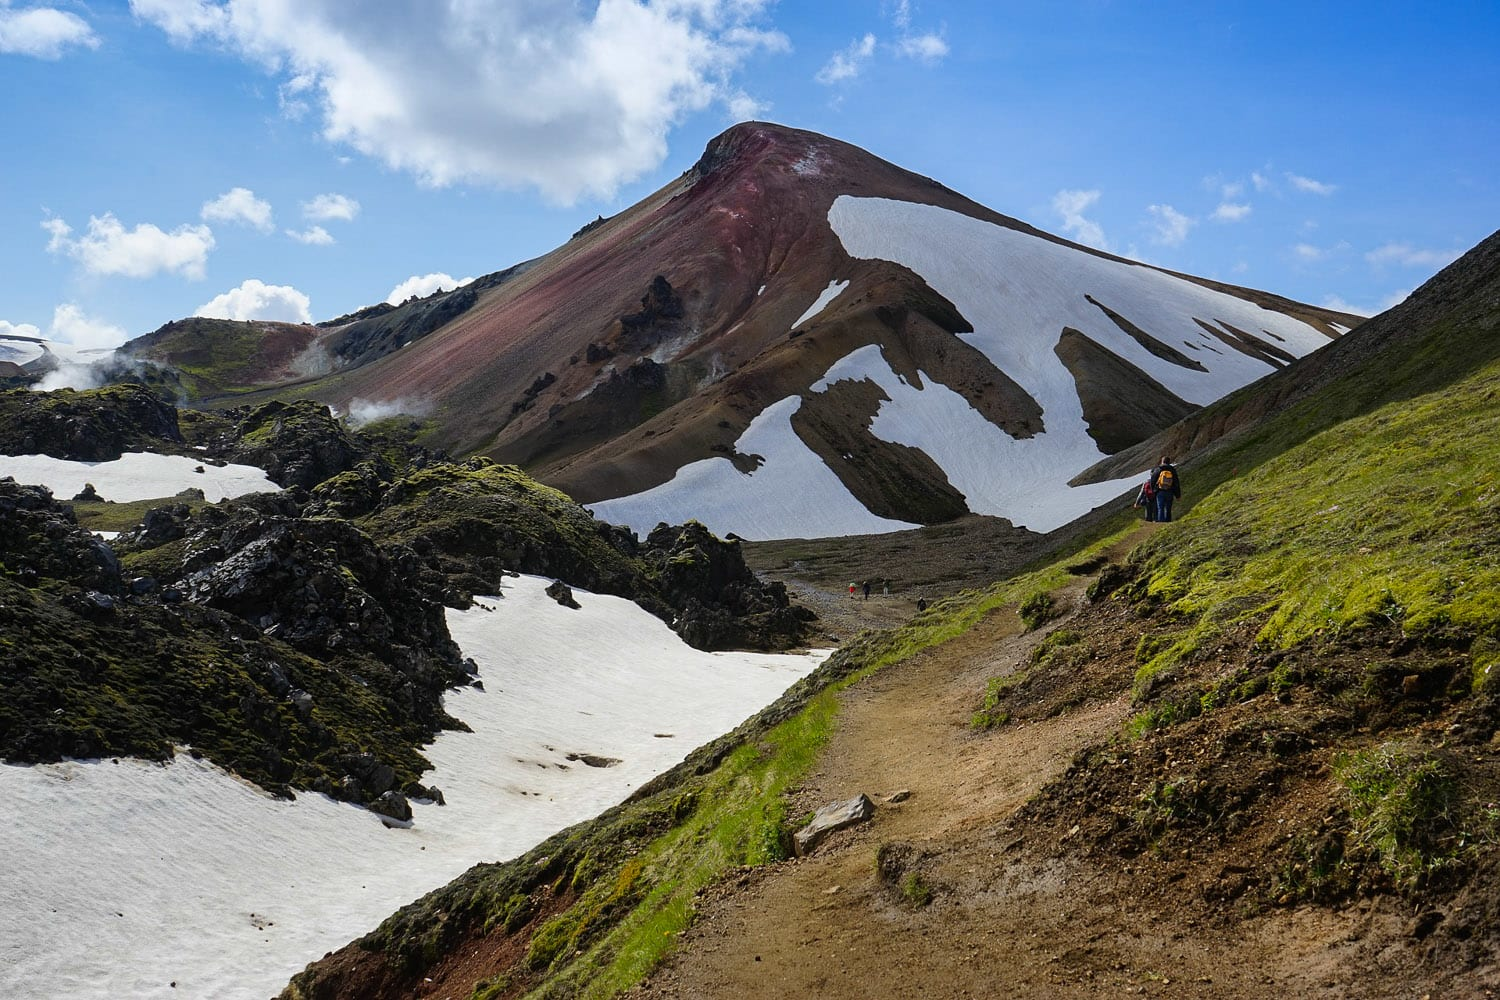 Hikers wandering between colorful mountains with snow, moss and steam patches